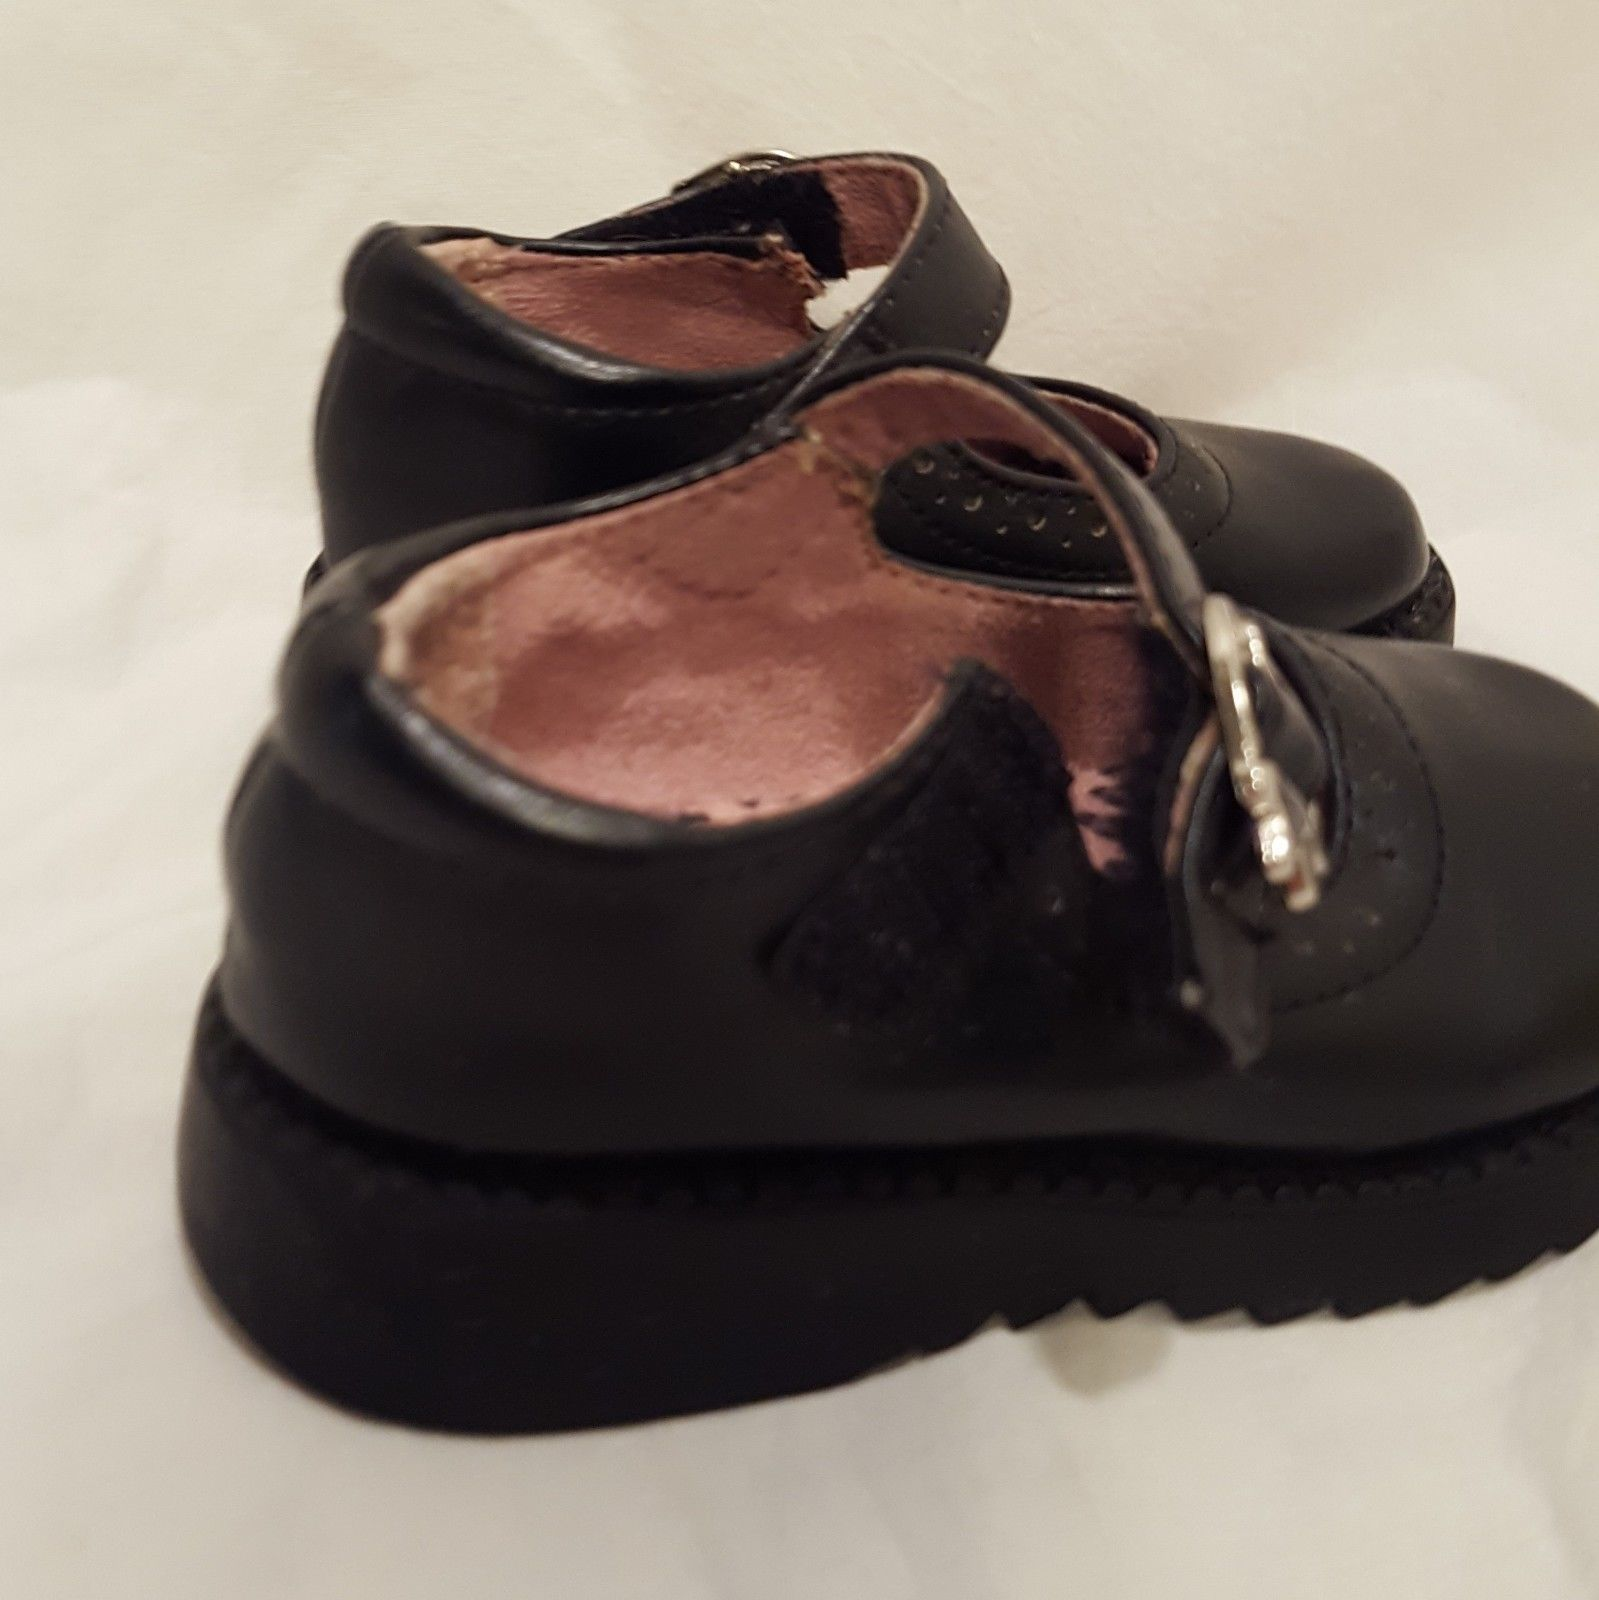 Shoes Black Mary Jane Janes Dress Shoes Circo  Size 5 Toddler Girls Hooks Loops